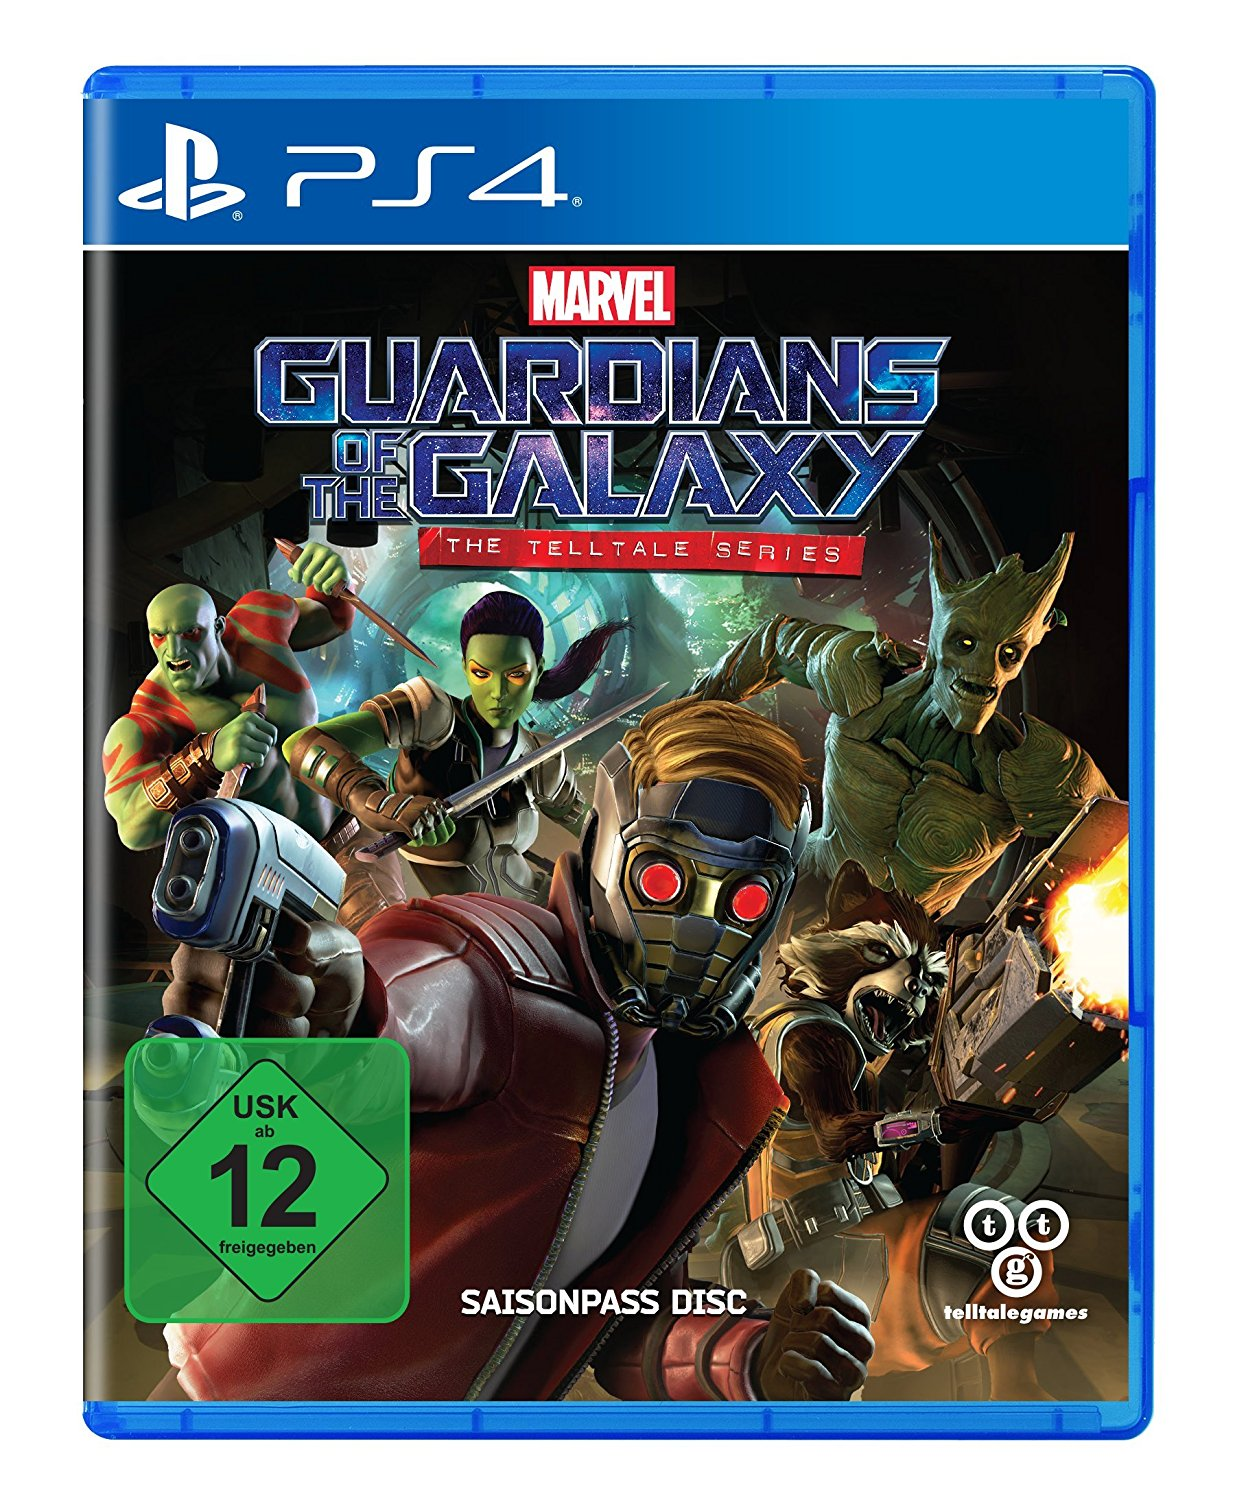 Guardians of the Galaxy PS4 amazon